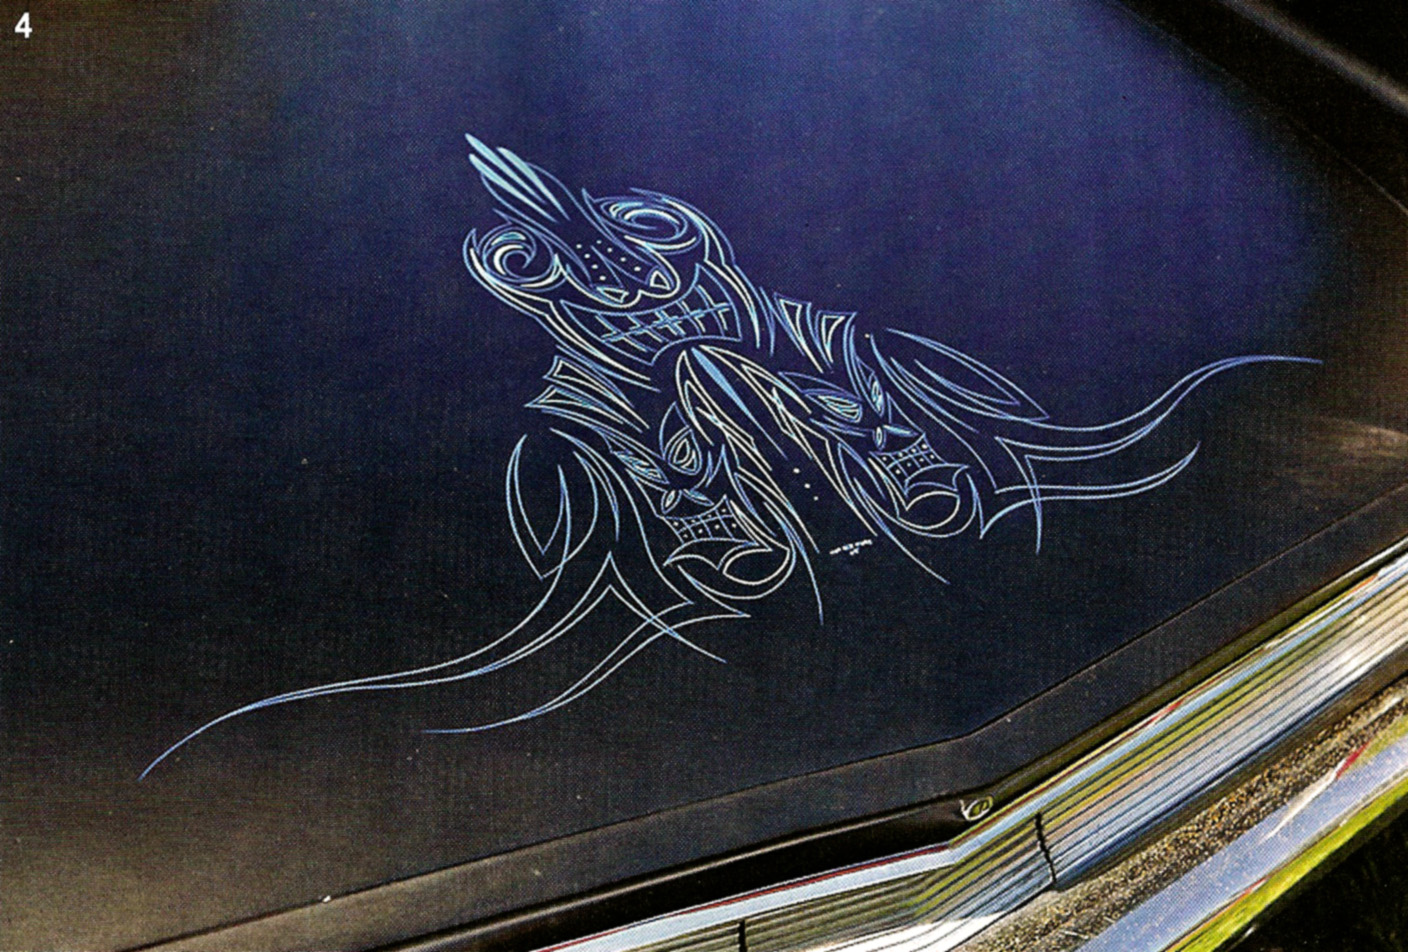 Classic Cars Authority Hot Rod Magazine Finally Covers Some Pinstriping About Time They Have Ignored It For About 40 Years